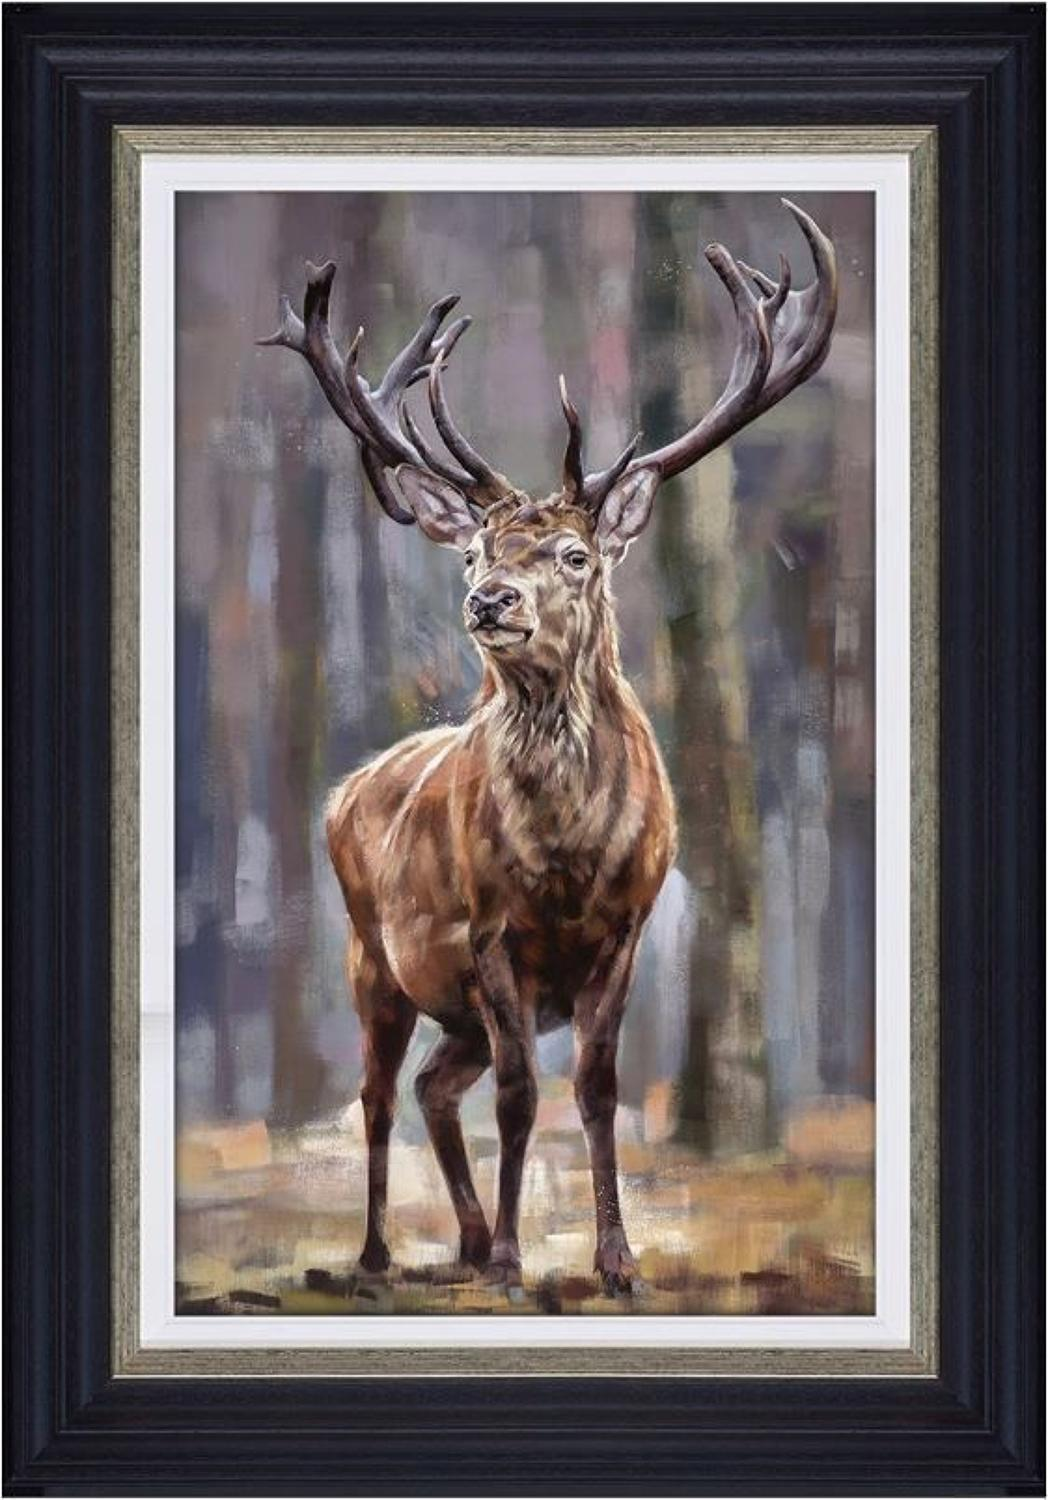 Standing Tall Framed Canvas Art Print by Debbie Boon